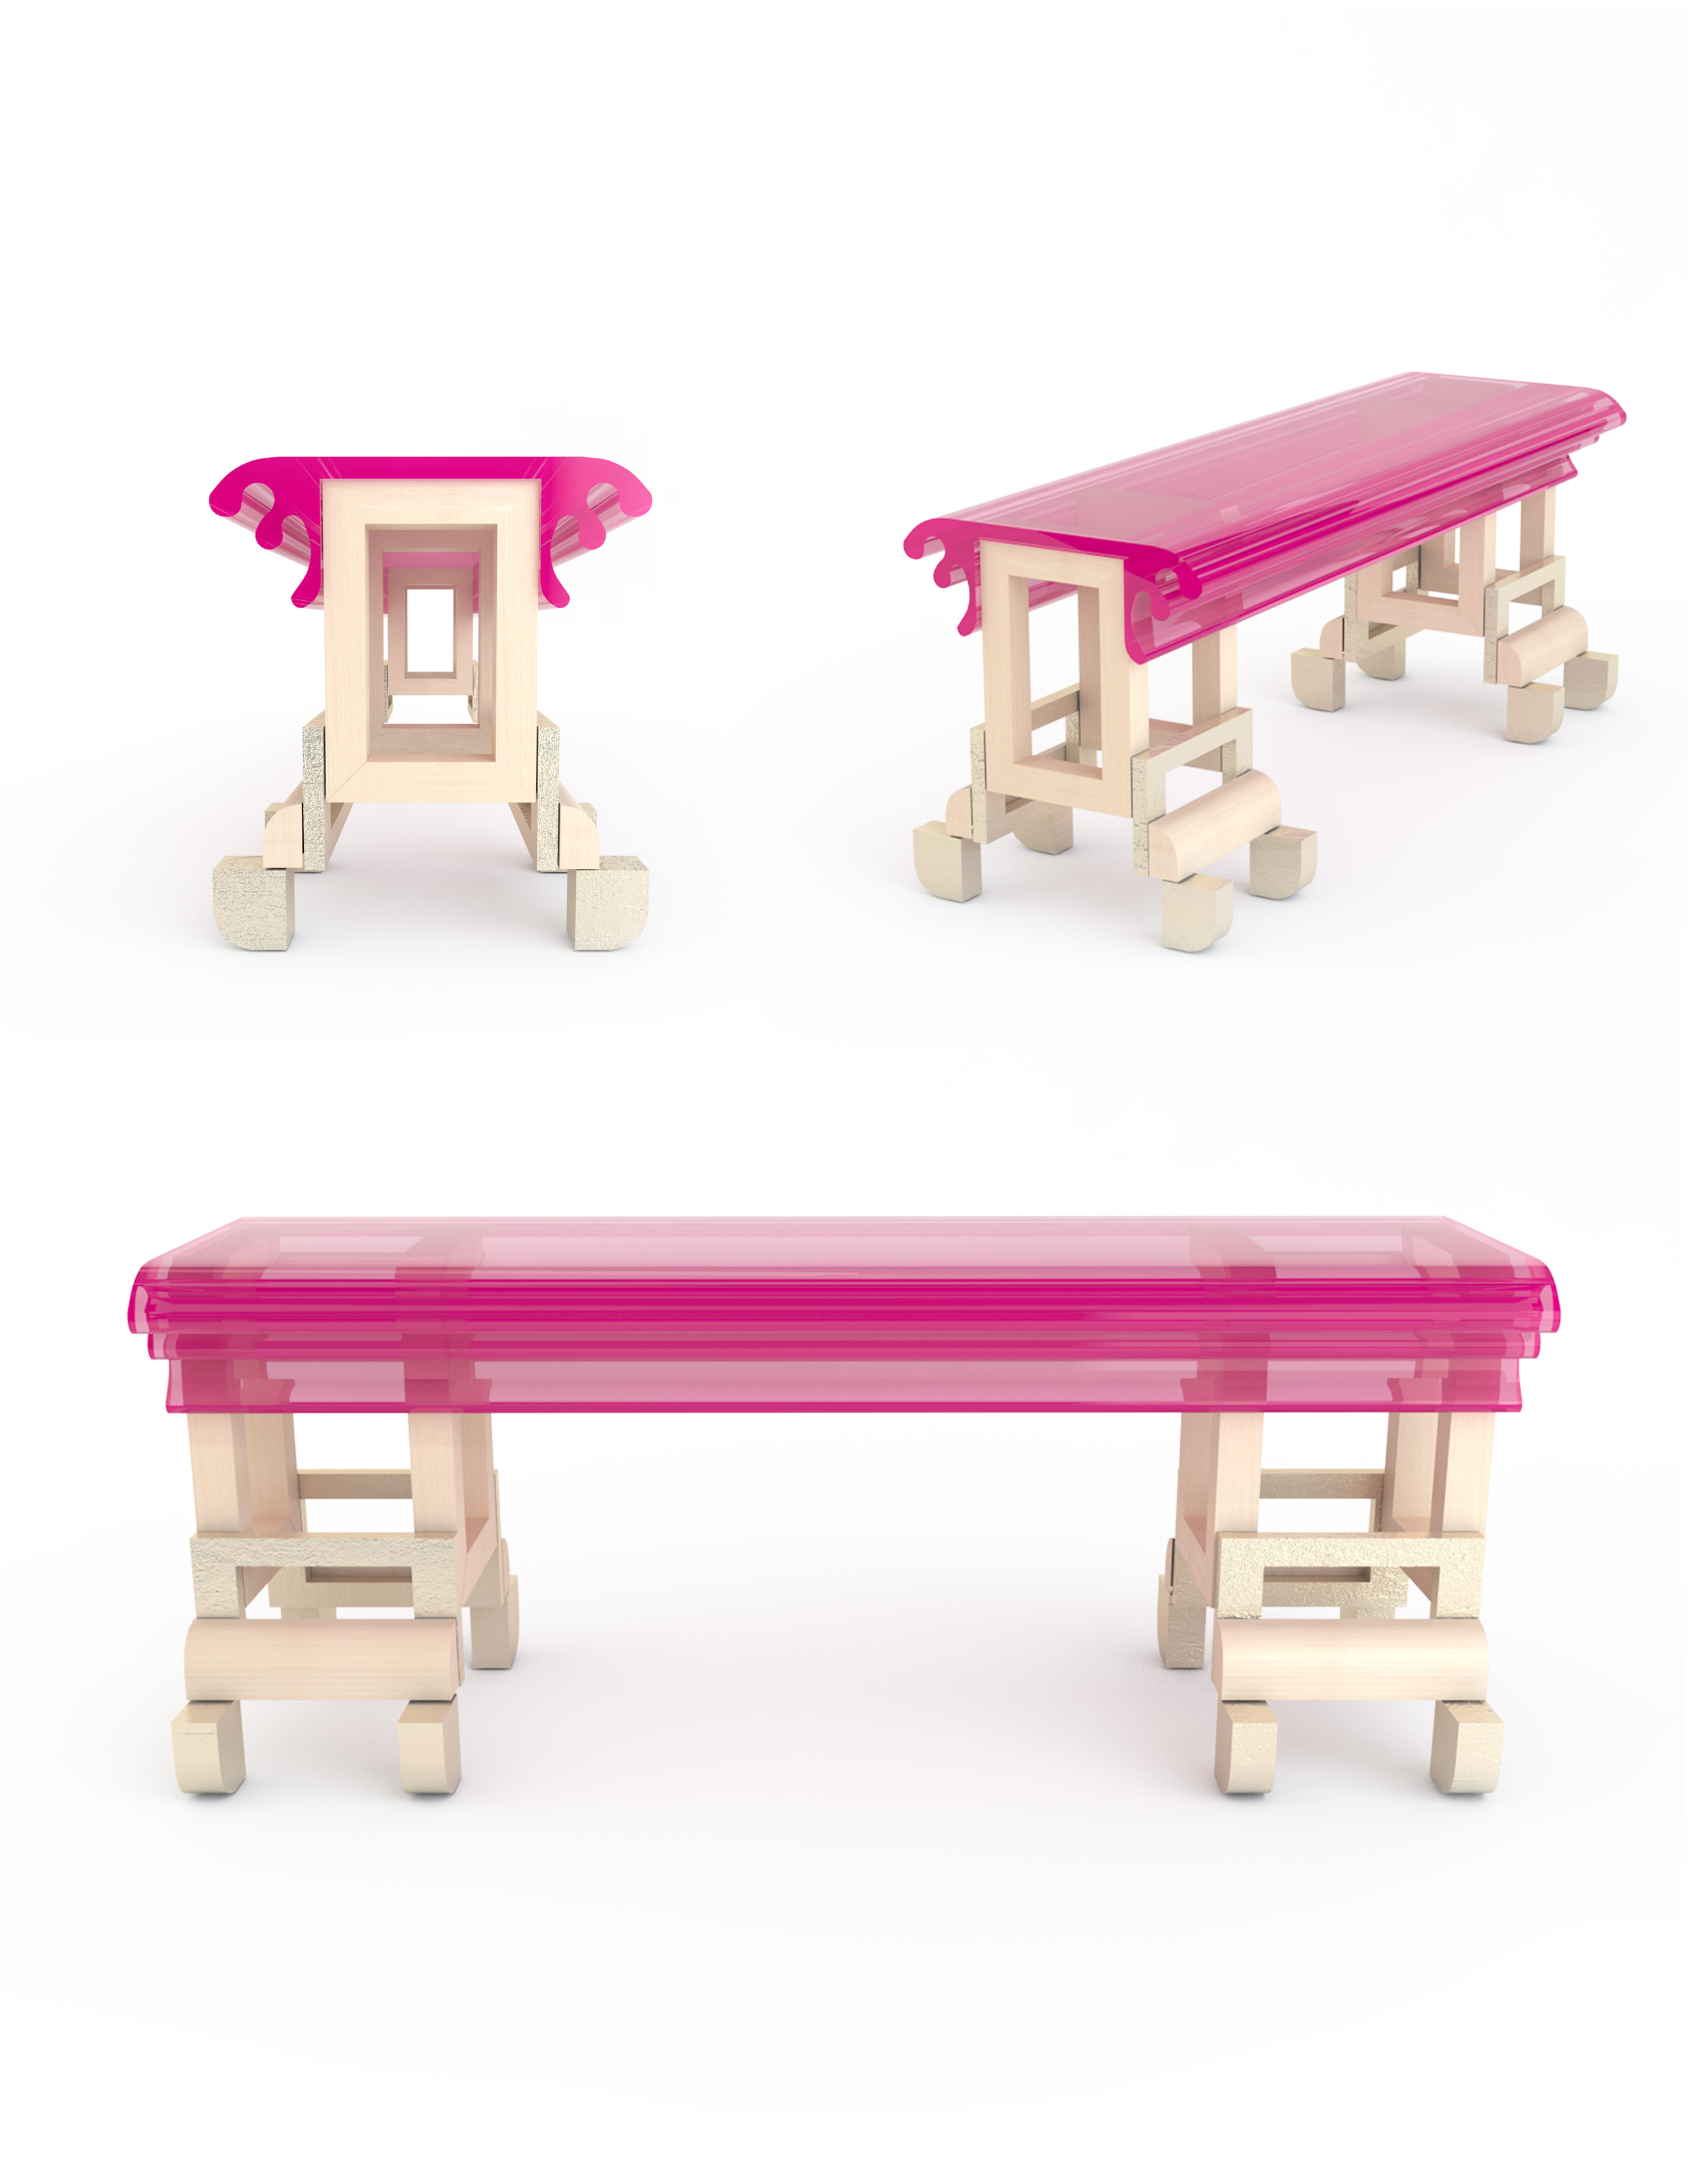 Table - 13 Bubblegum Bench or table.jpg